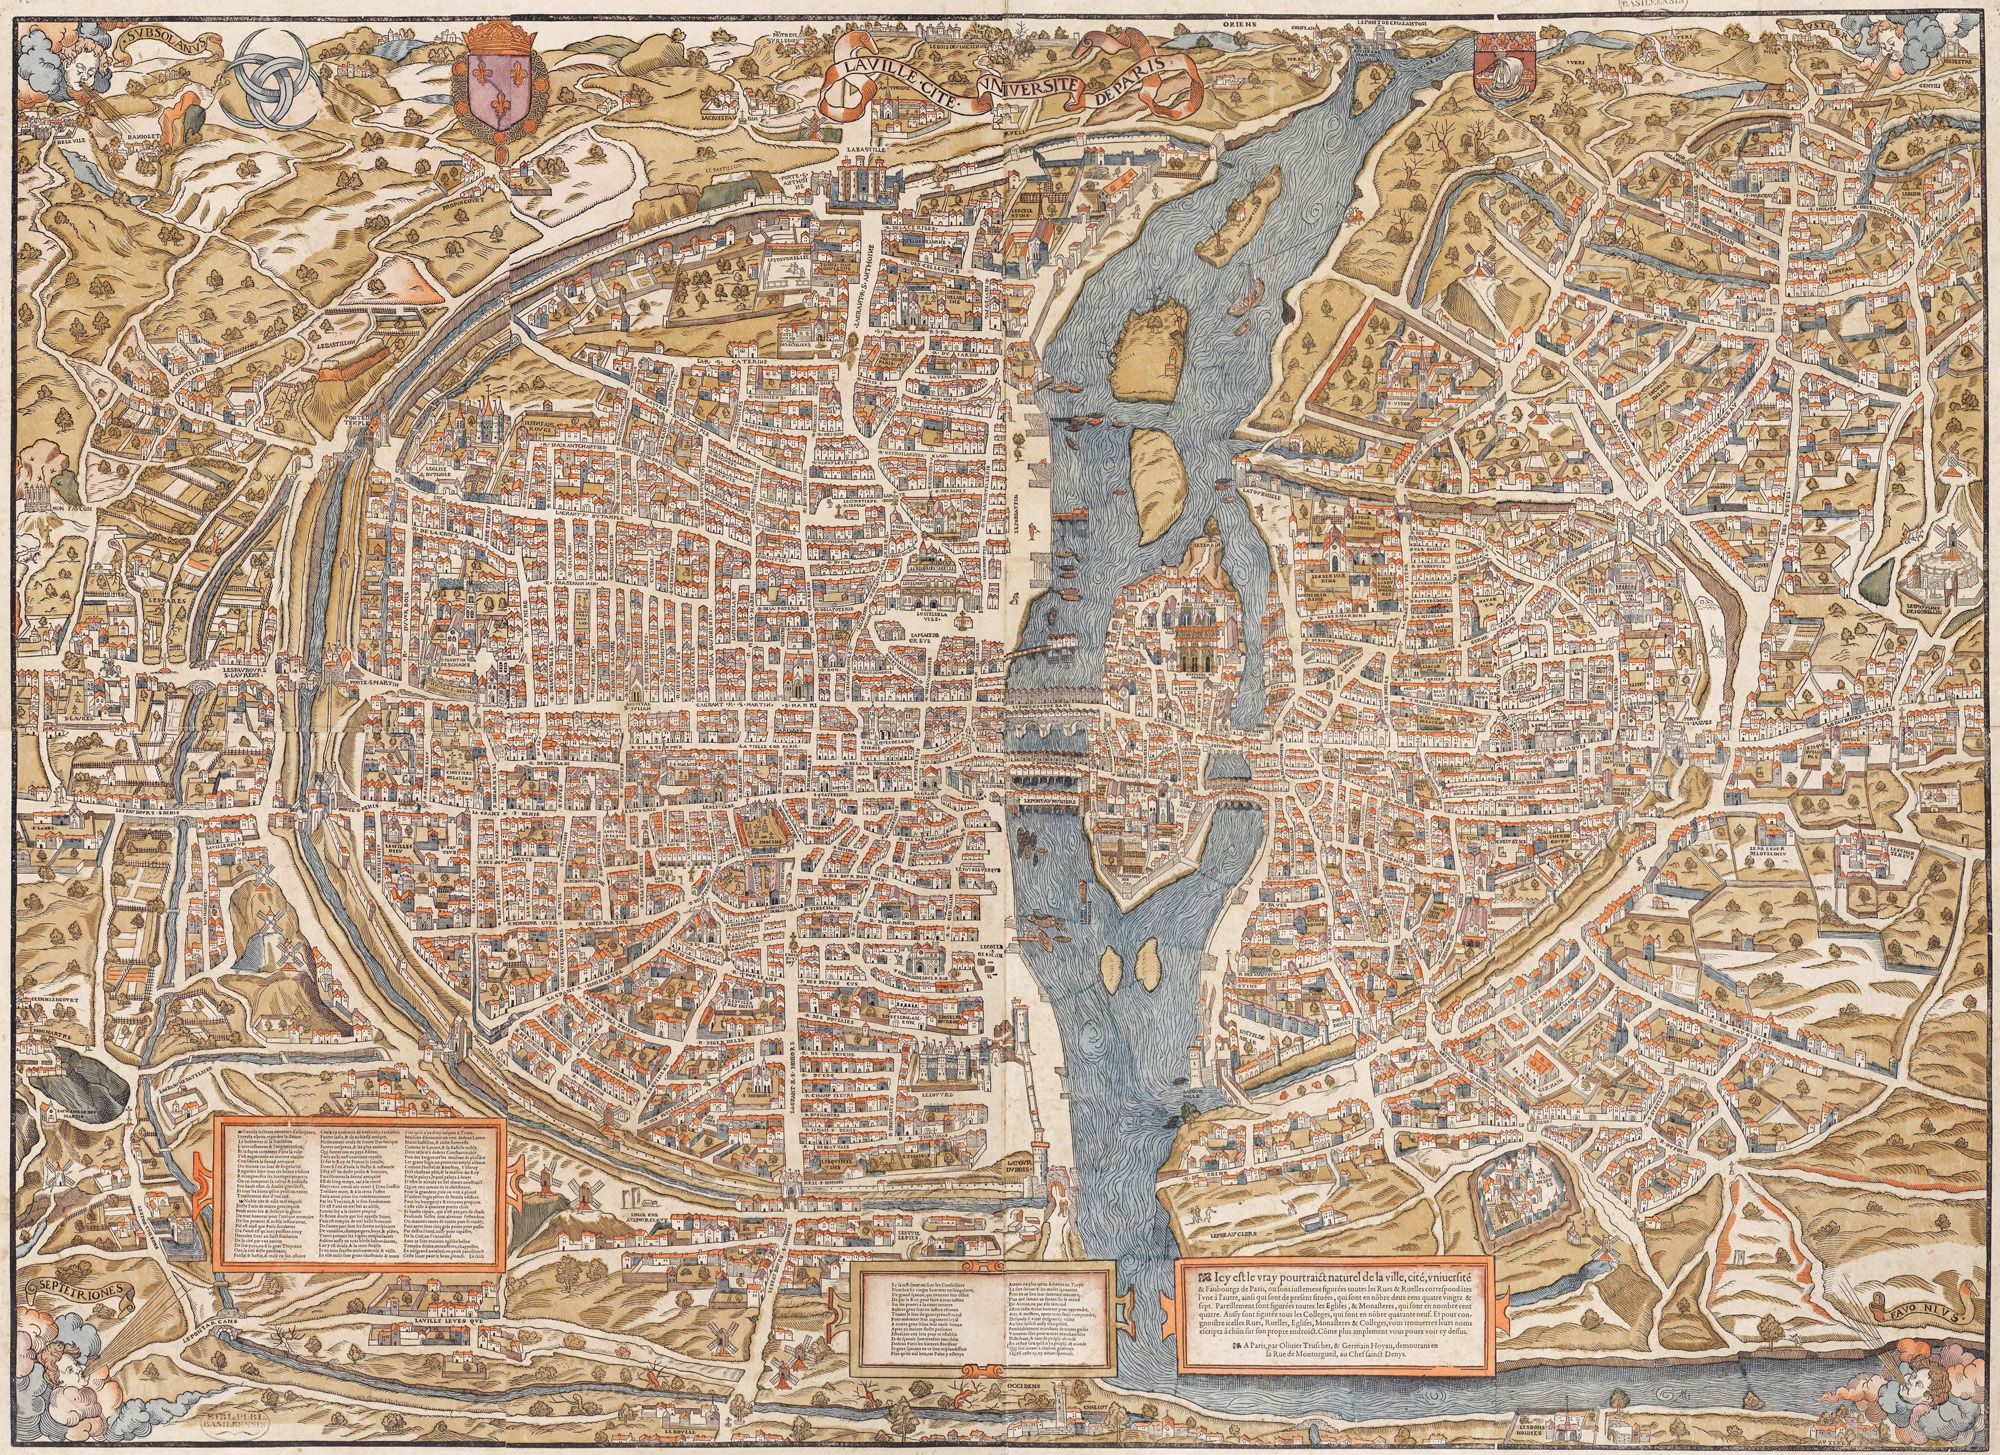 PARIS I Old Maps of Paris - Year 1550 | Cartography | Pinterest ...